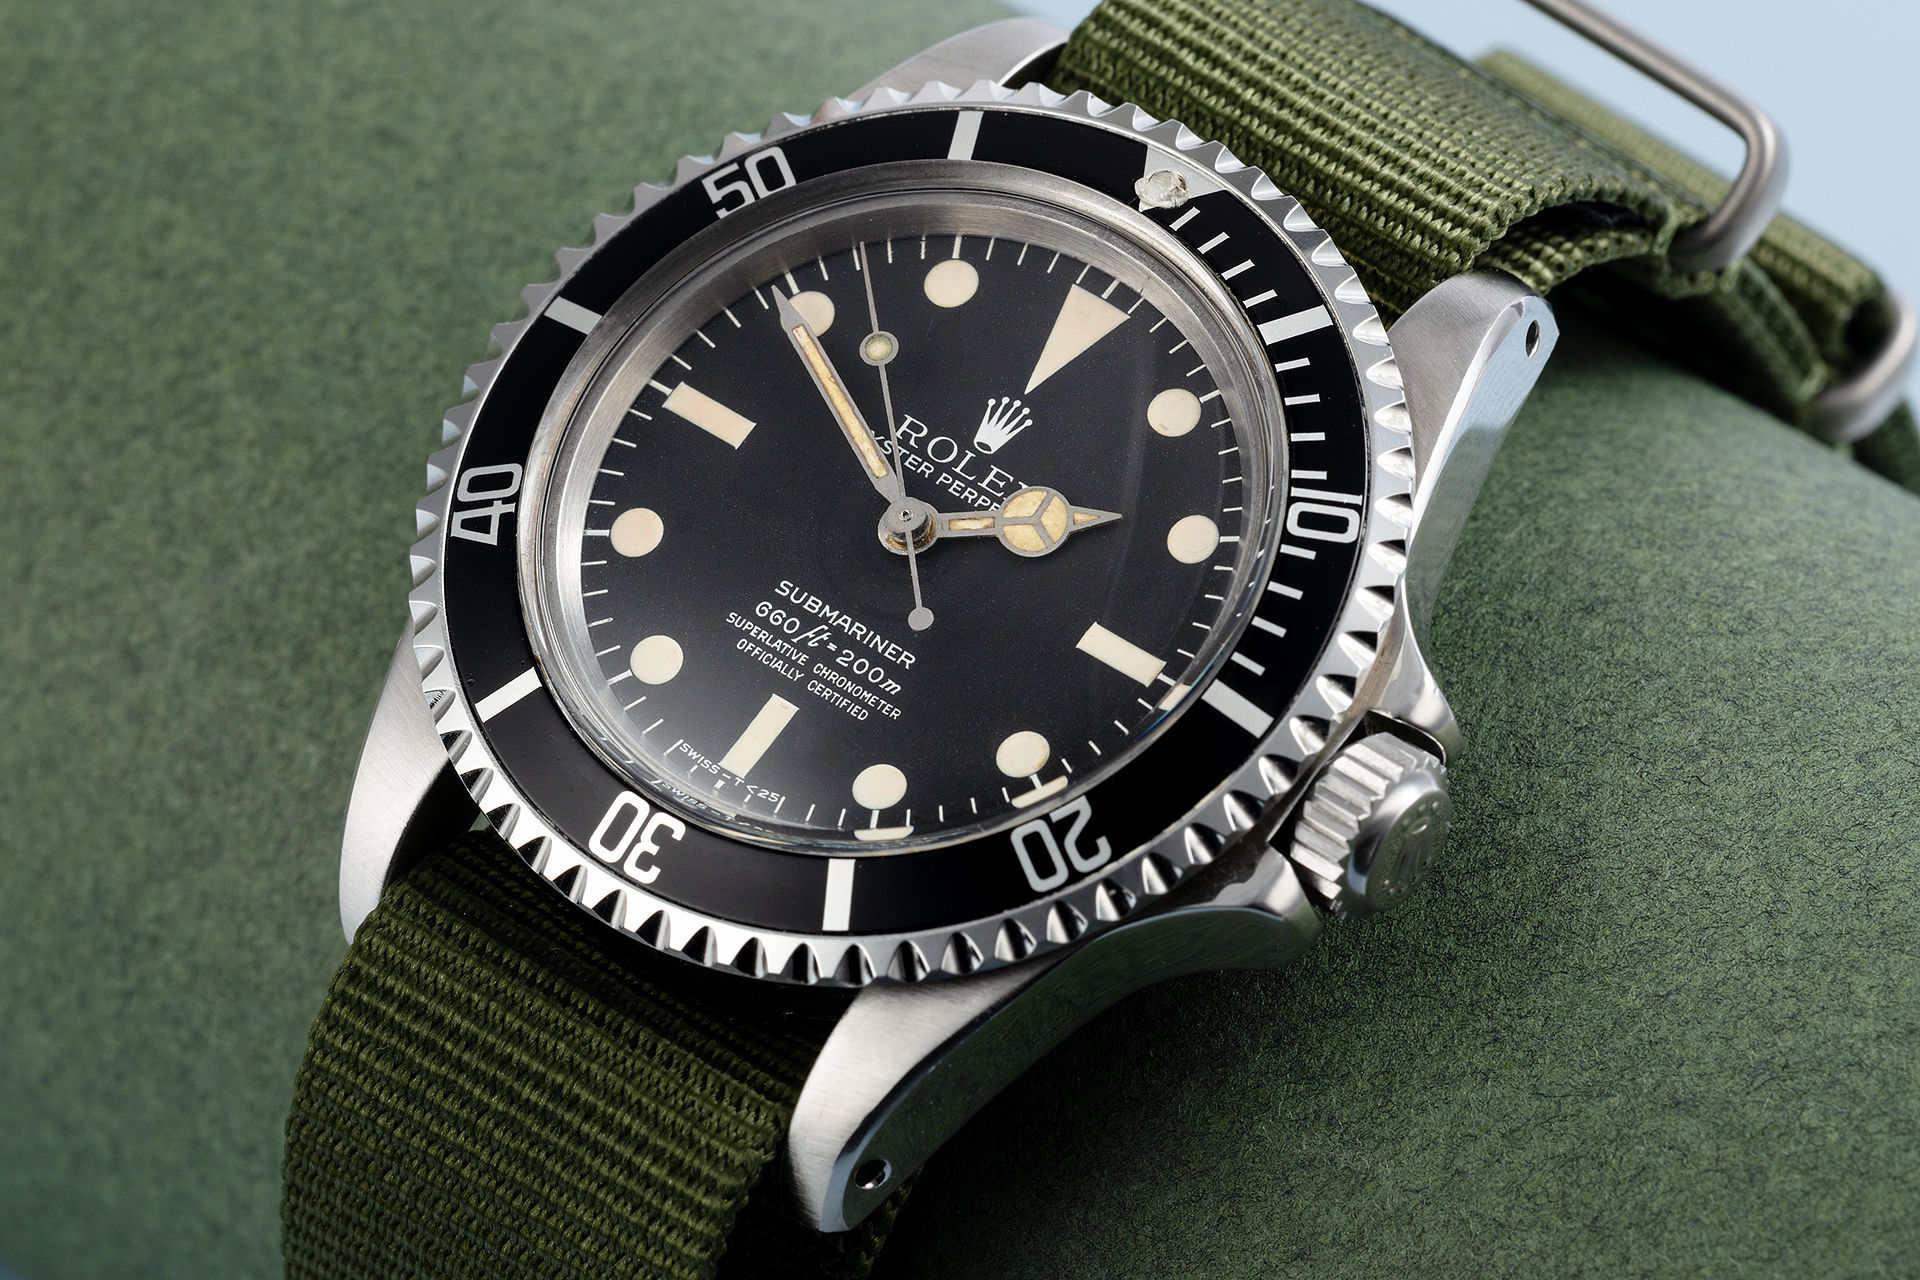 ref 5512 | Rare Chronometer '5512' | Rolex Submariner